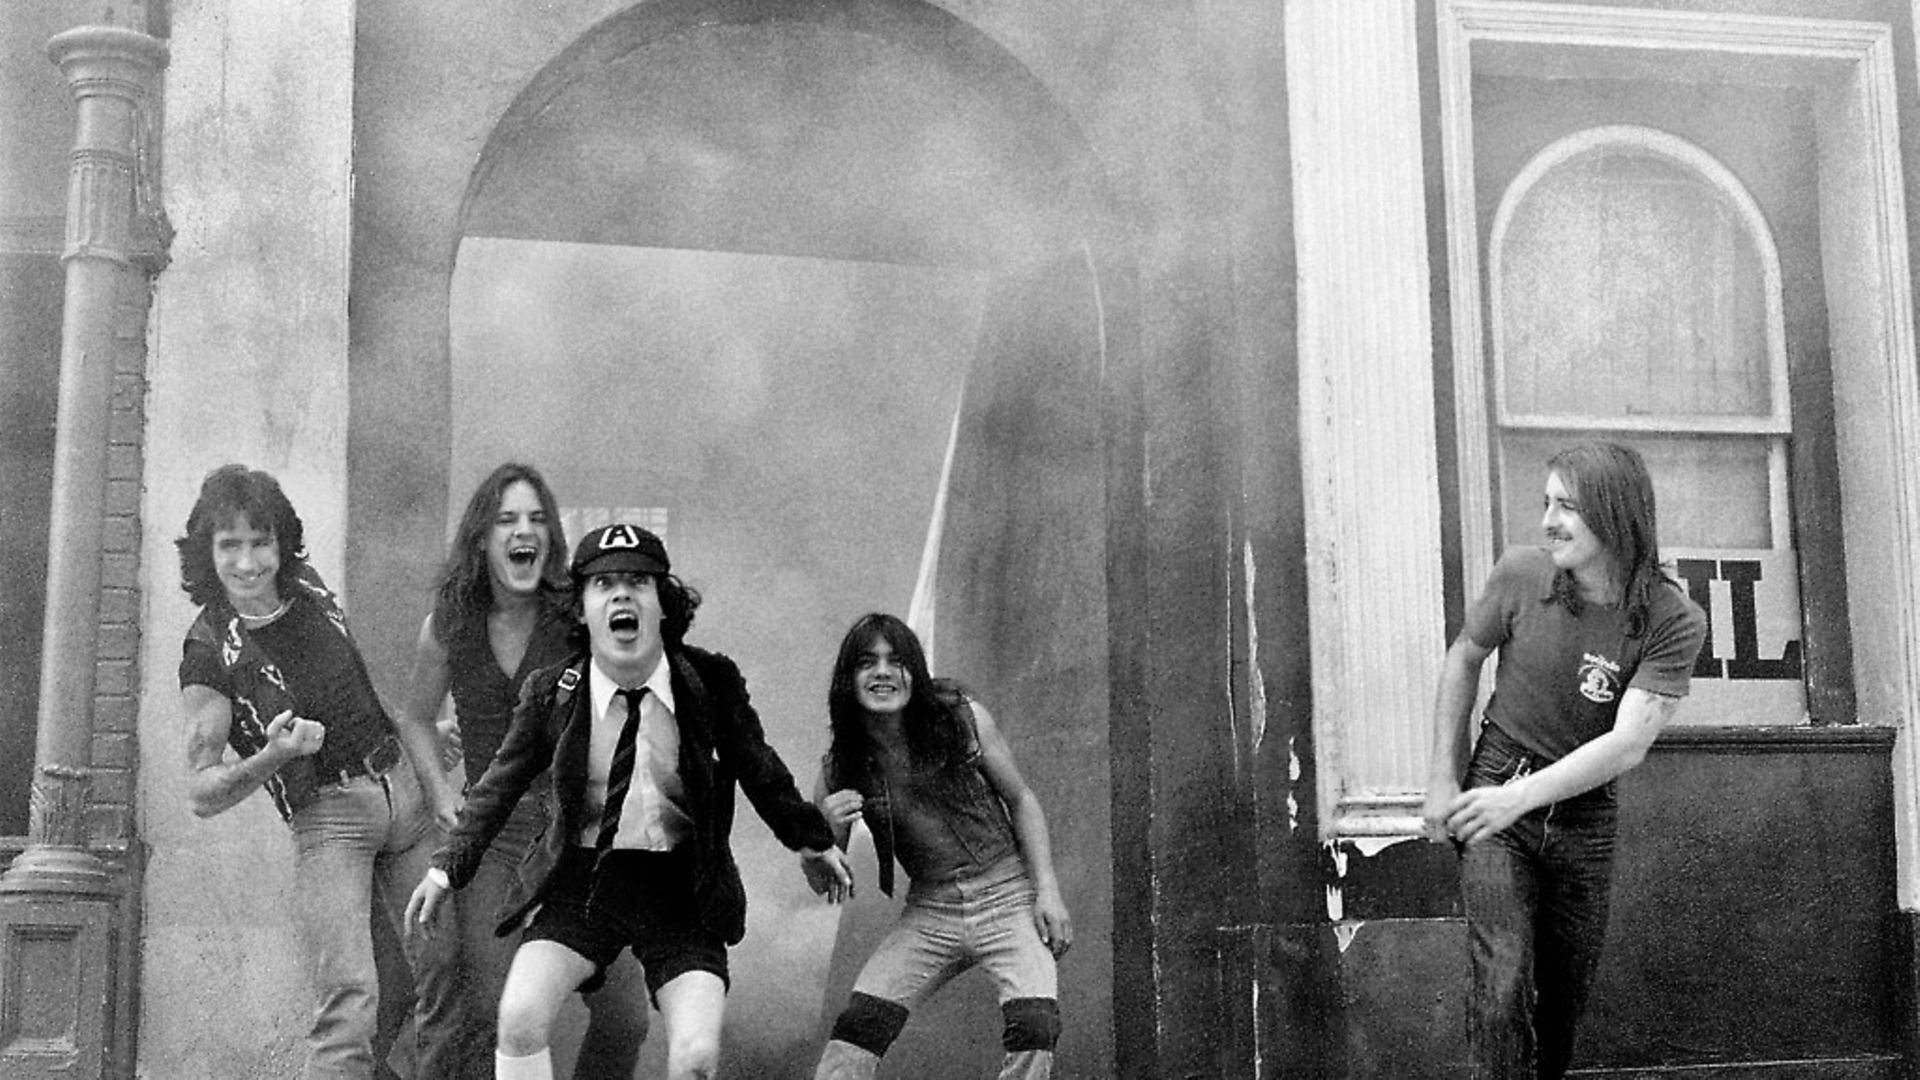 AC/DC at Shepperton Studios in 1976. Picture: Martyn Goddard/Corbis via Getty Images. - Credit: Corbis via Getty Images